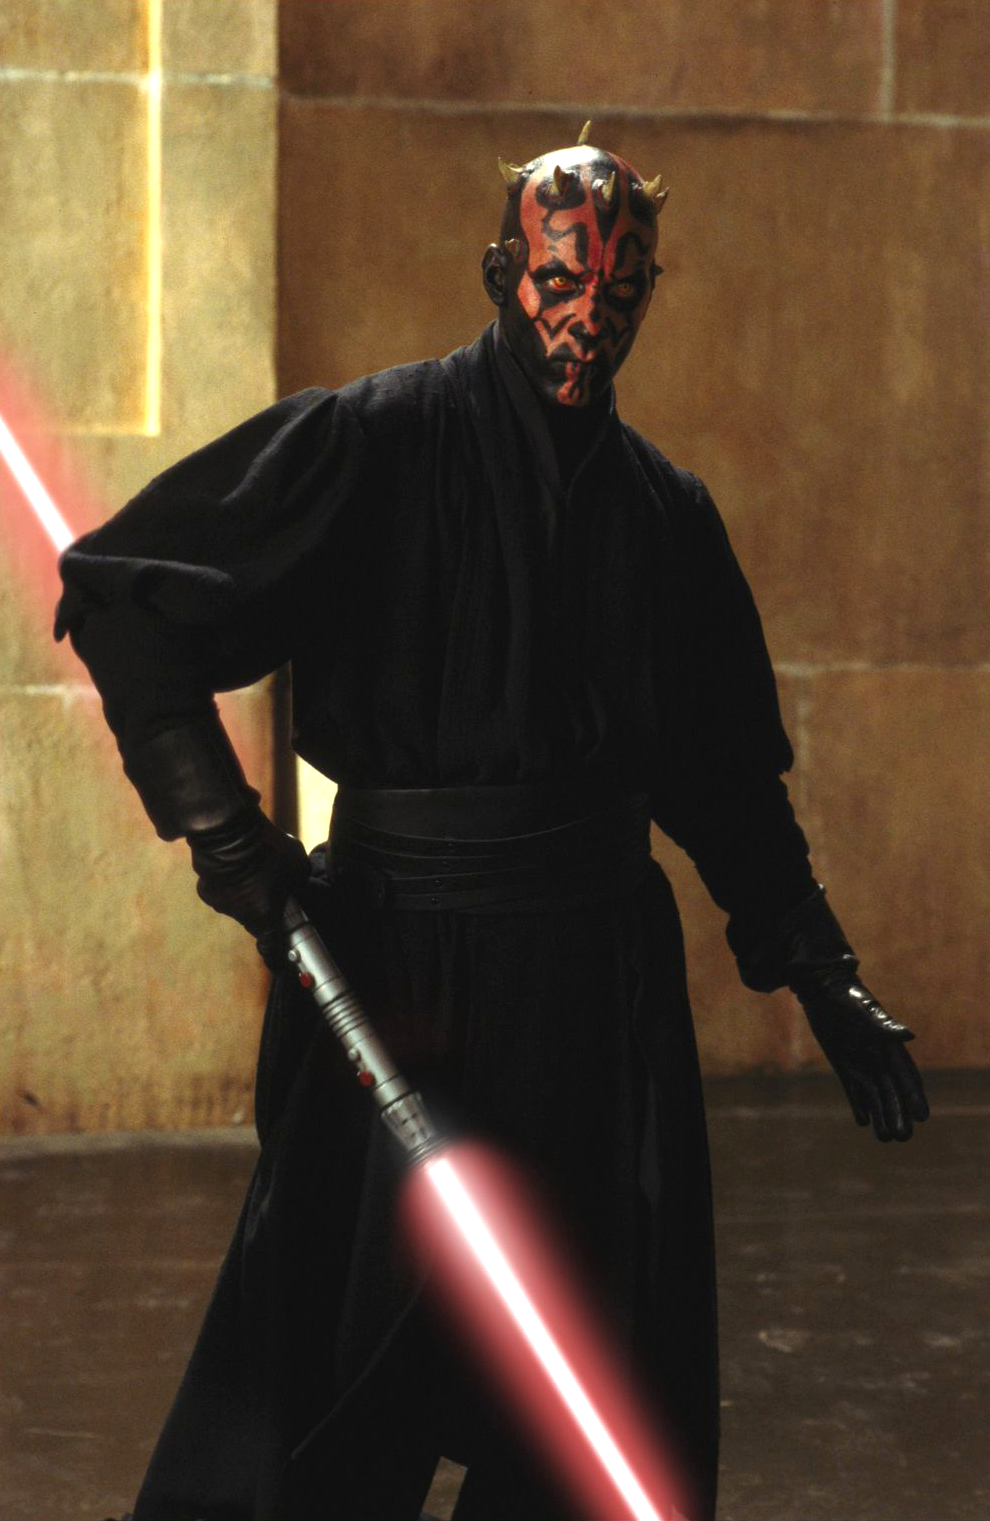 Darth Maul's lightsaber - Wookieepedia, the Star Wars Wiki